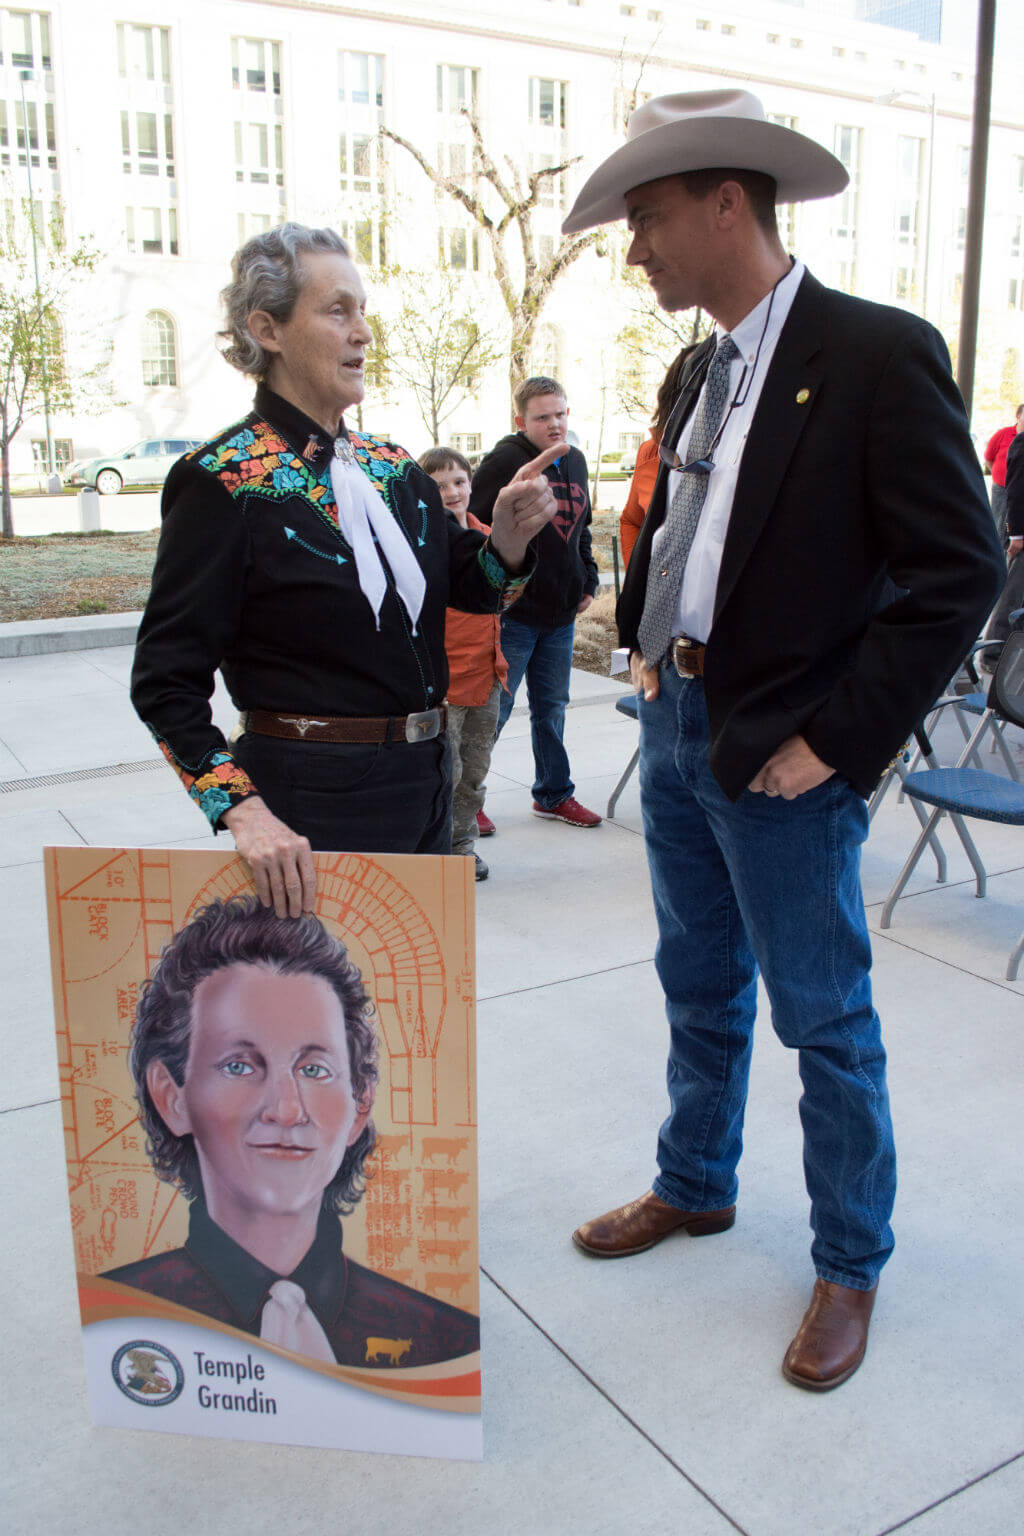 Image: Grandin with her USPTO inventor trading card, presented to her in 2016 at the USPTO Rocky Mountain Regional Office in Denver, Colorado.